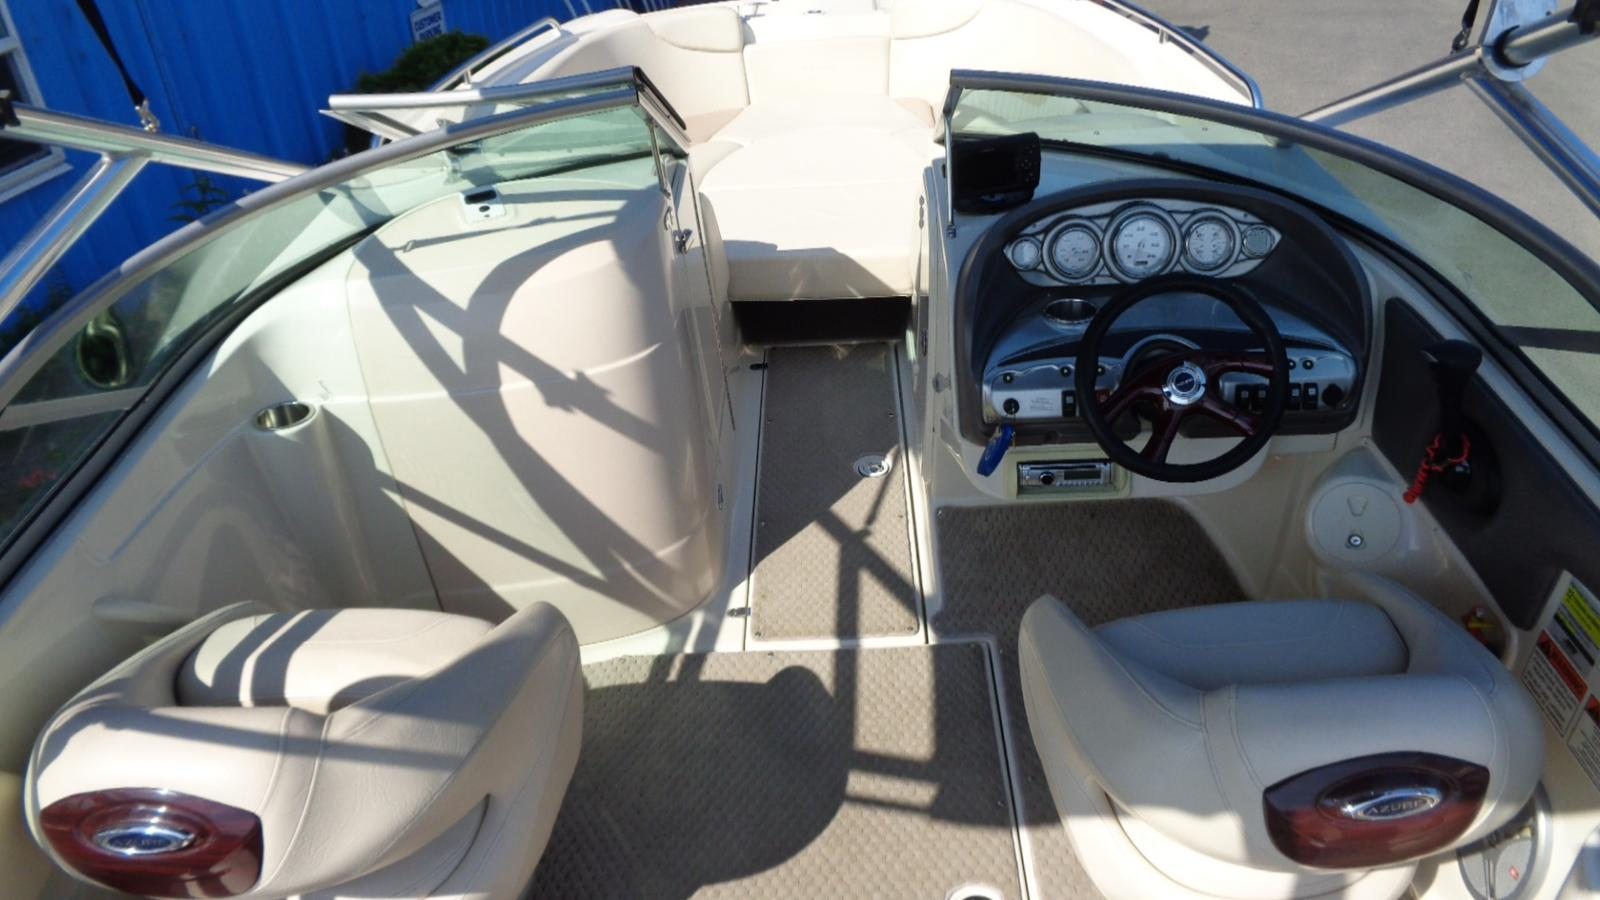 2007 Azure boat for sale, model of the boat is AZ 220 & Image # 6 of 15